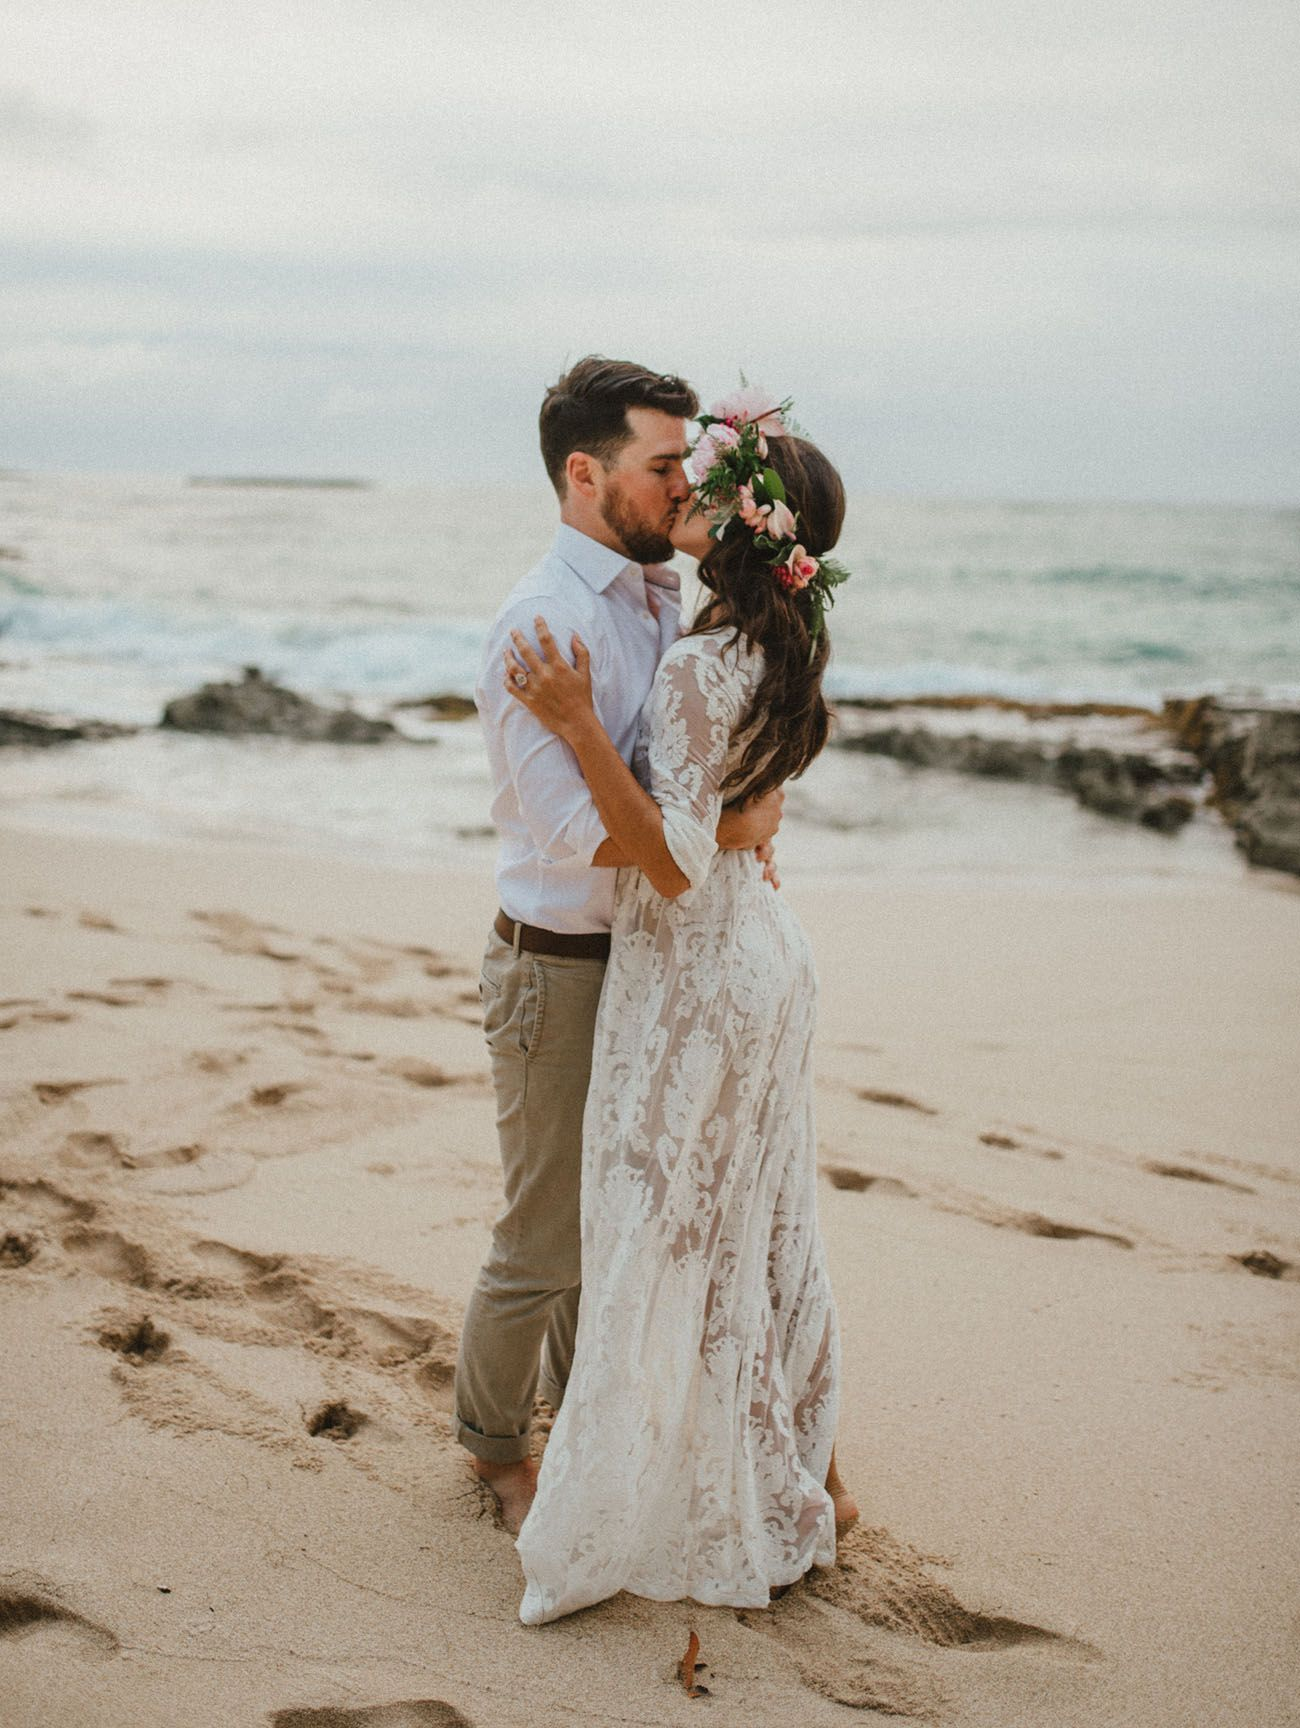 Stunning surprise beach proposal floral crown photoshoot and bohemian